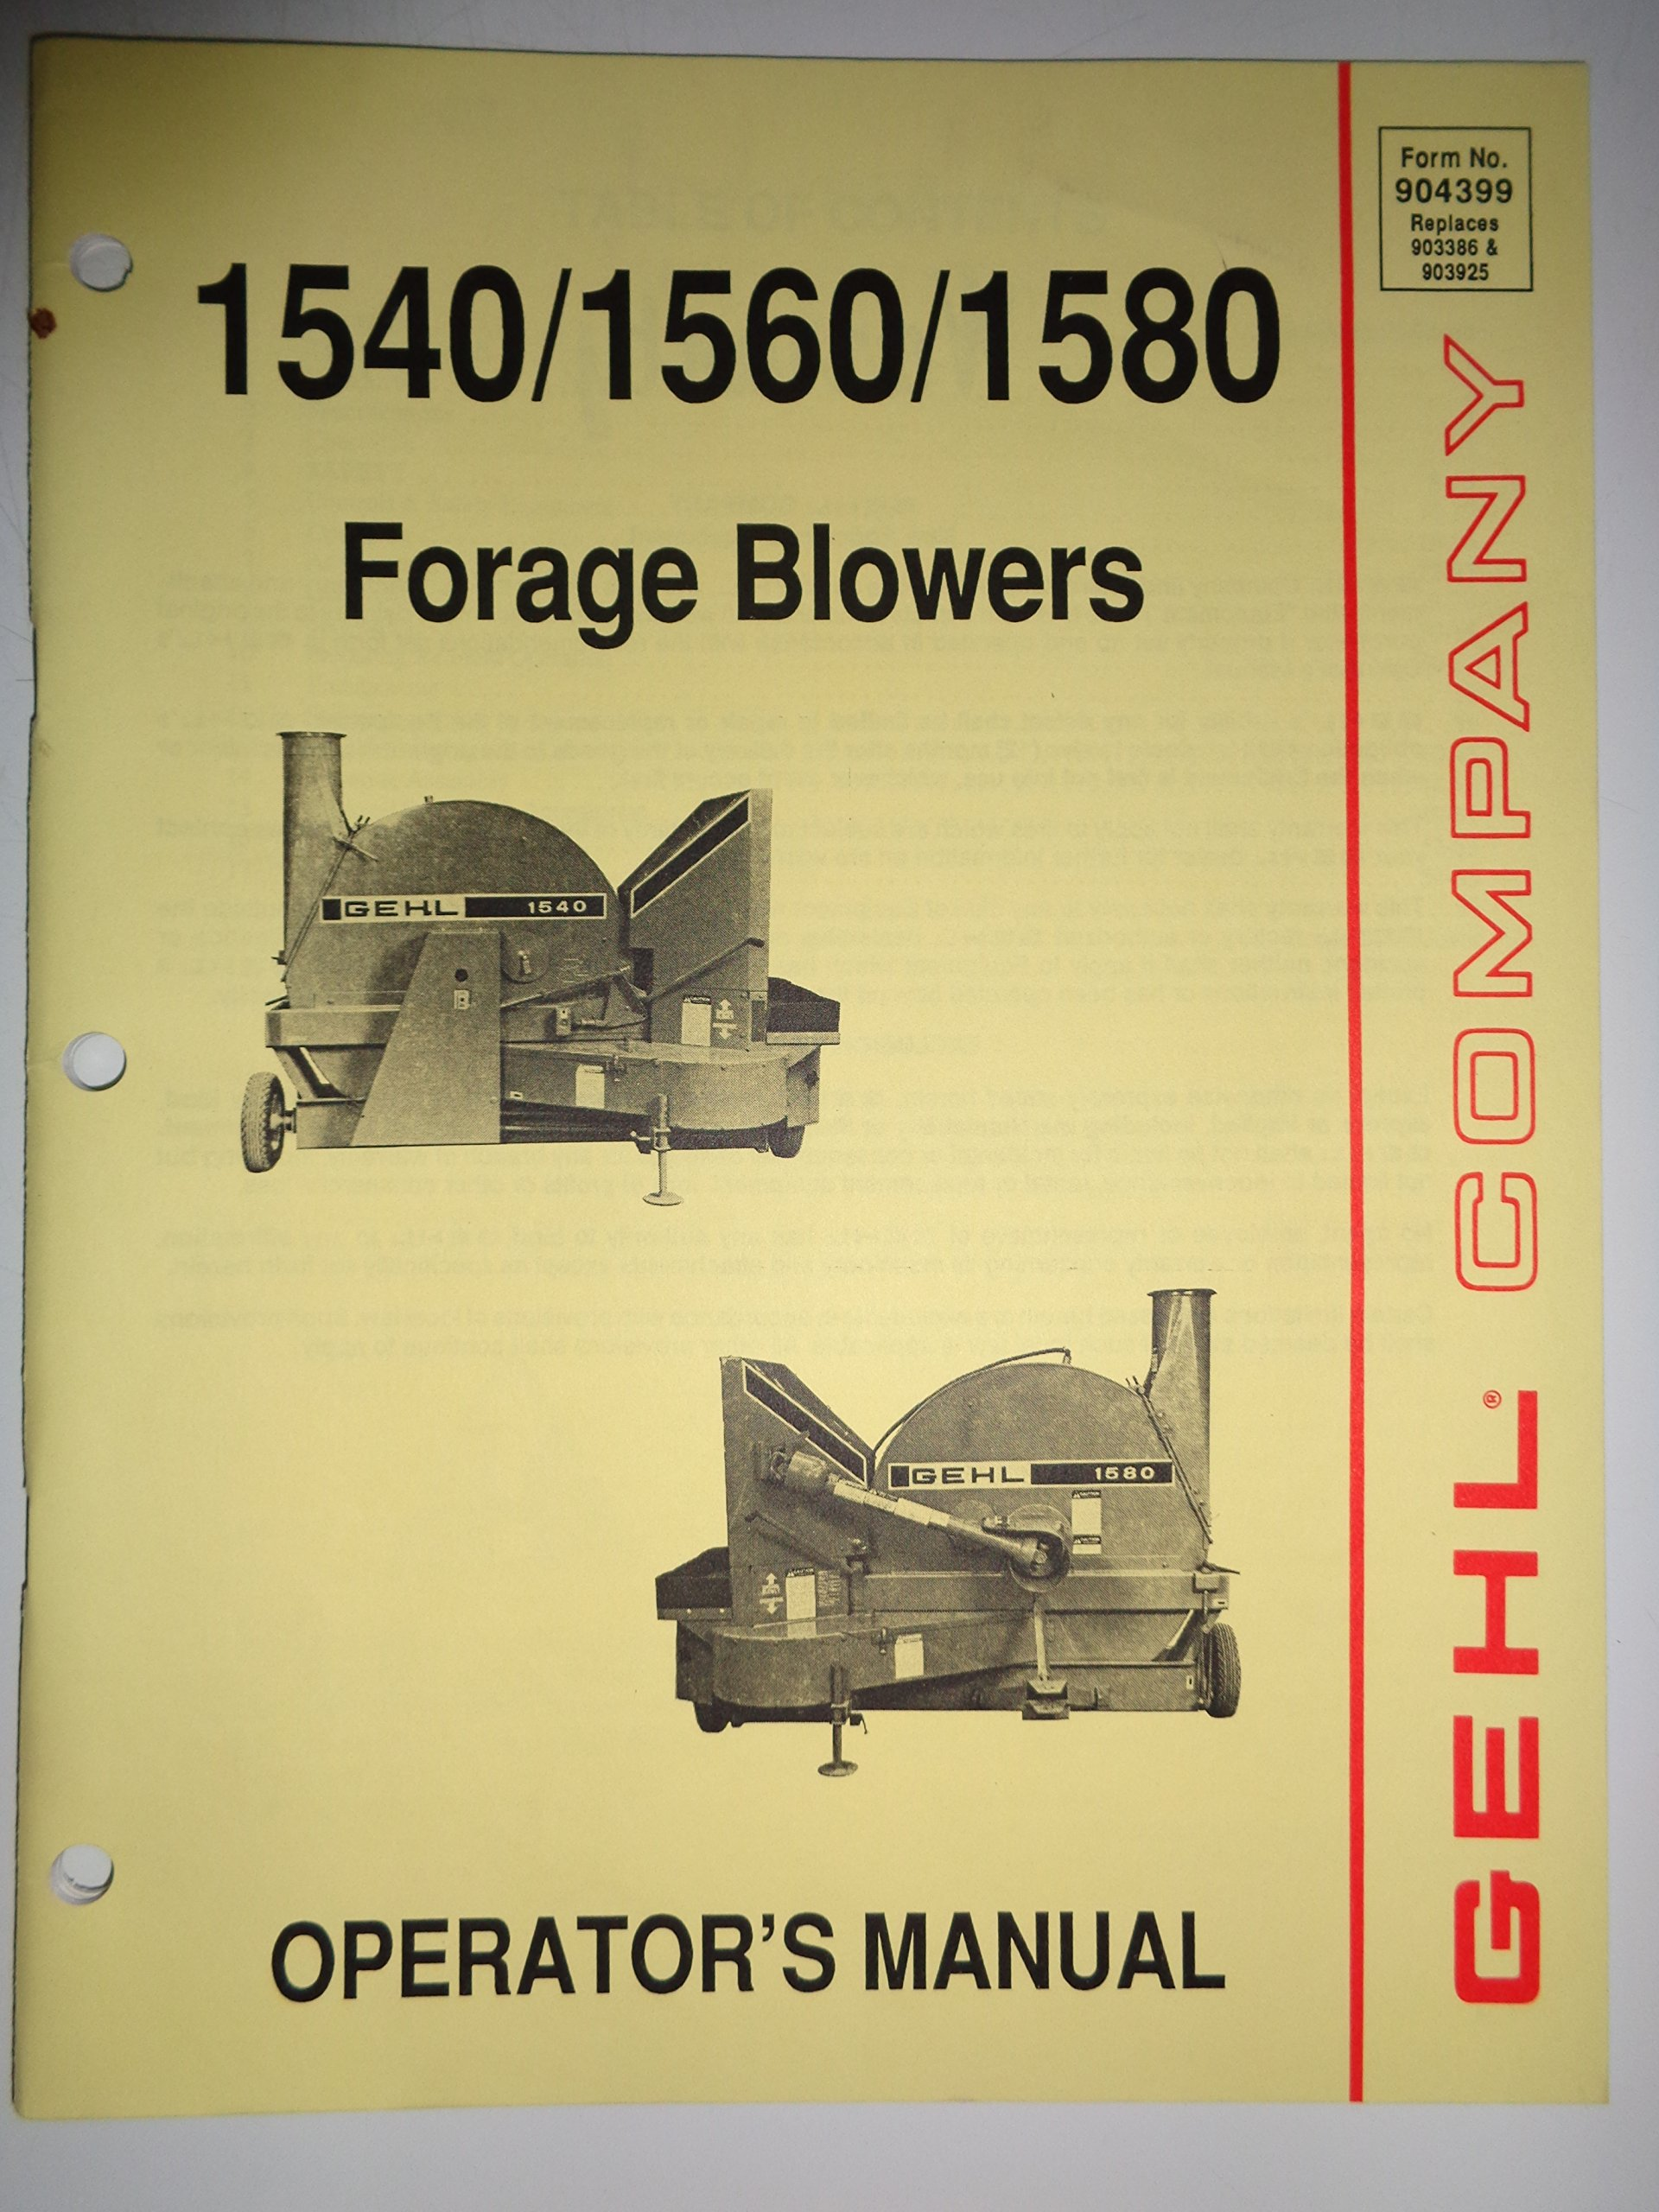 Gehl 1540 1560 1580 Forage Blower Operators Owners Manual 4/89: gehl:  Amazon.com: Books